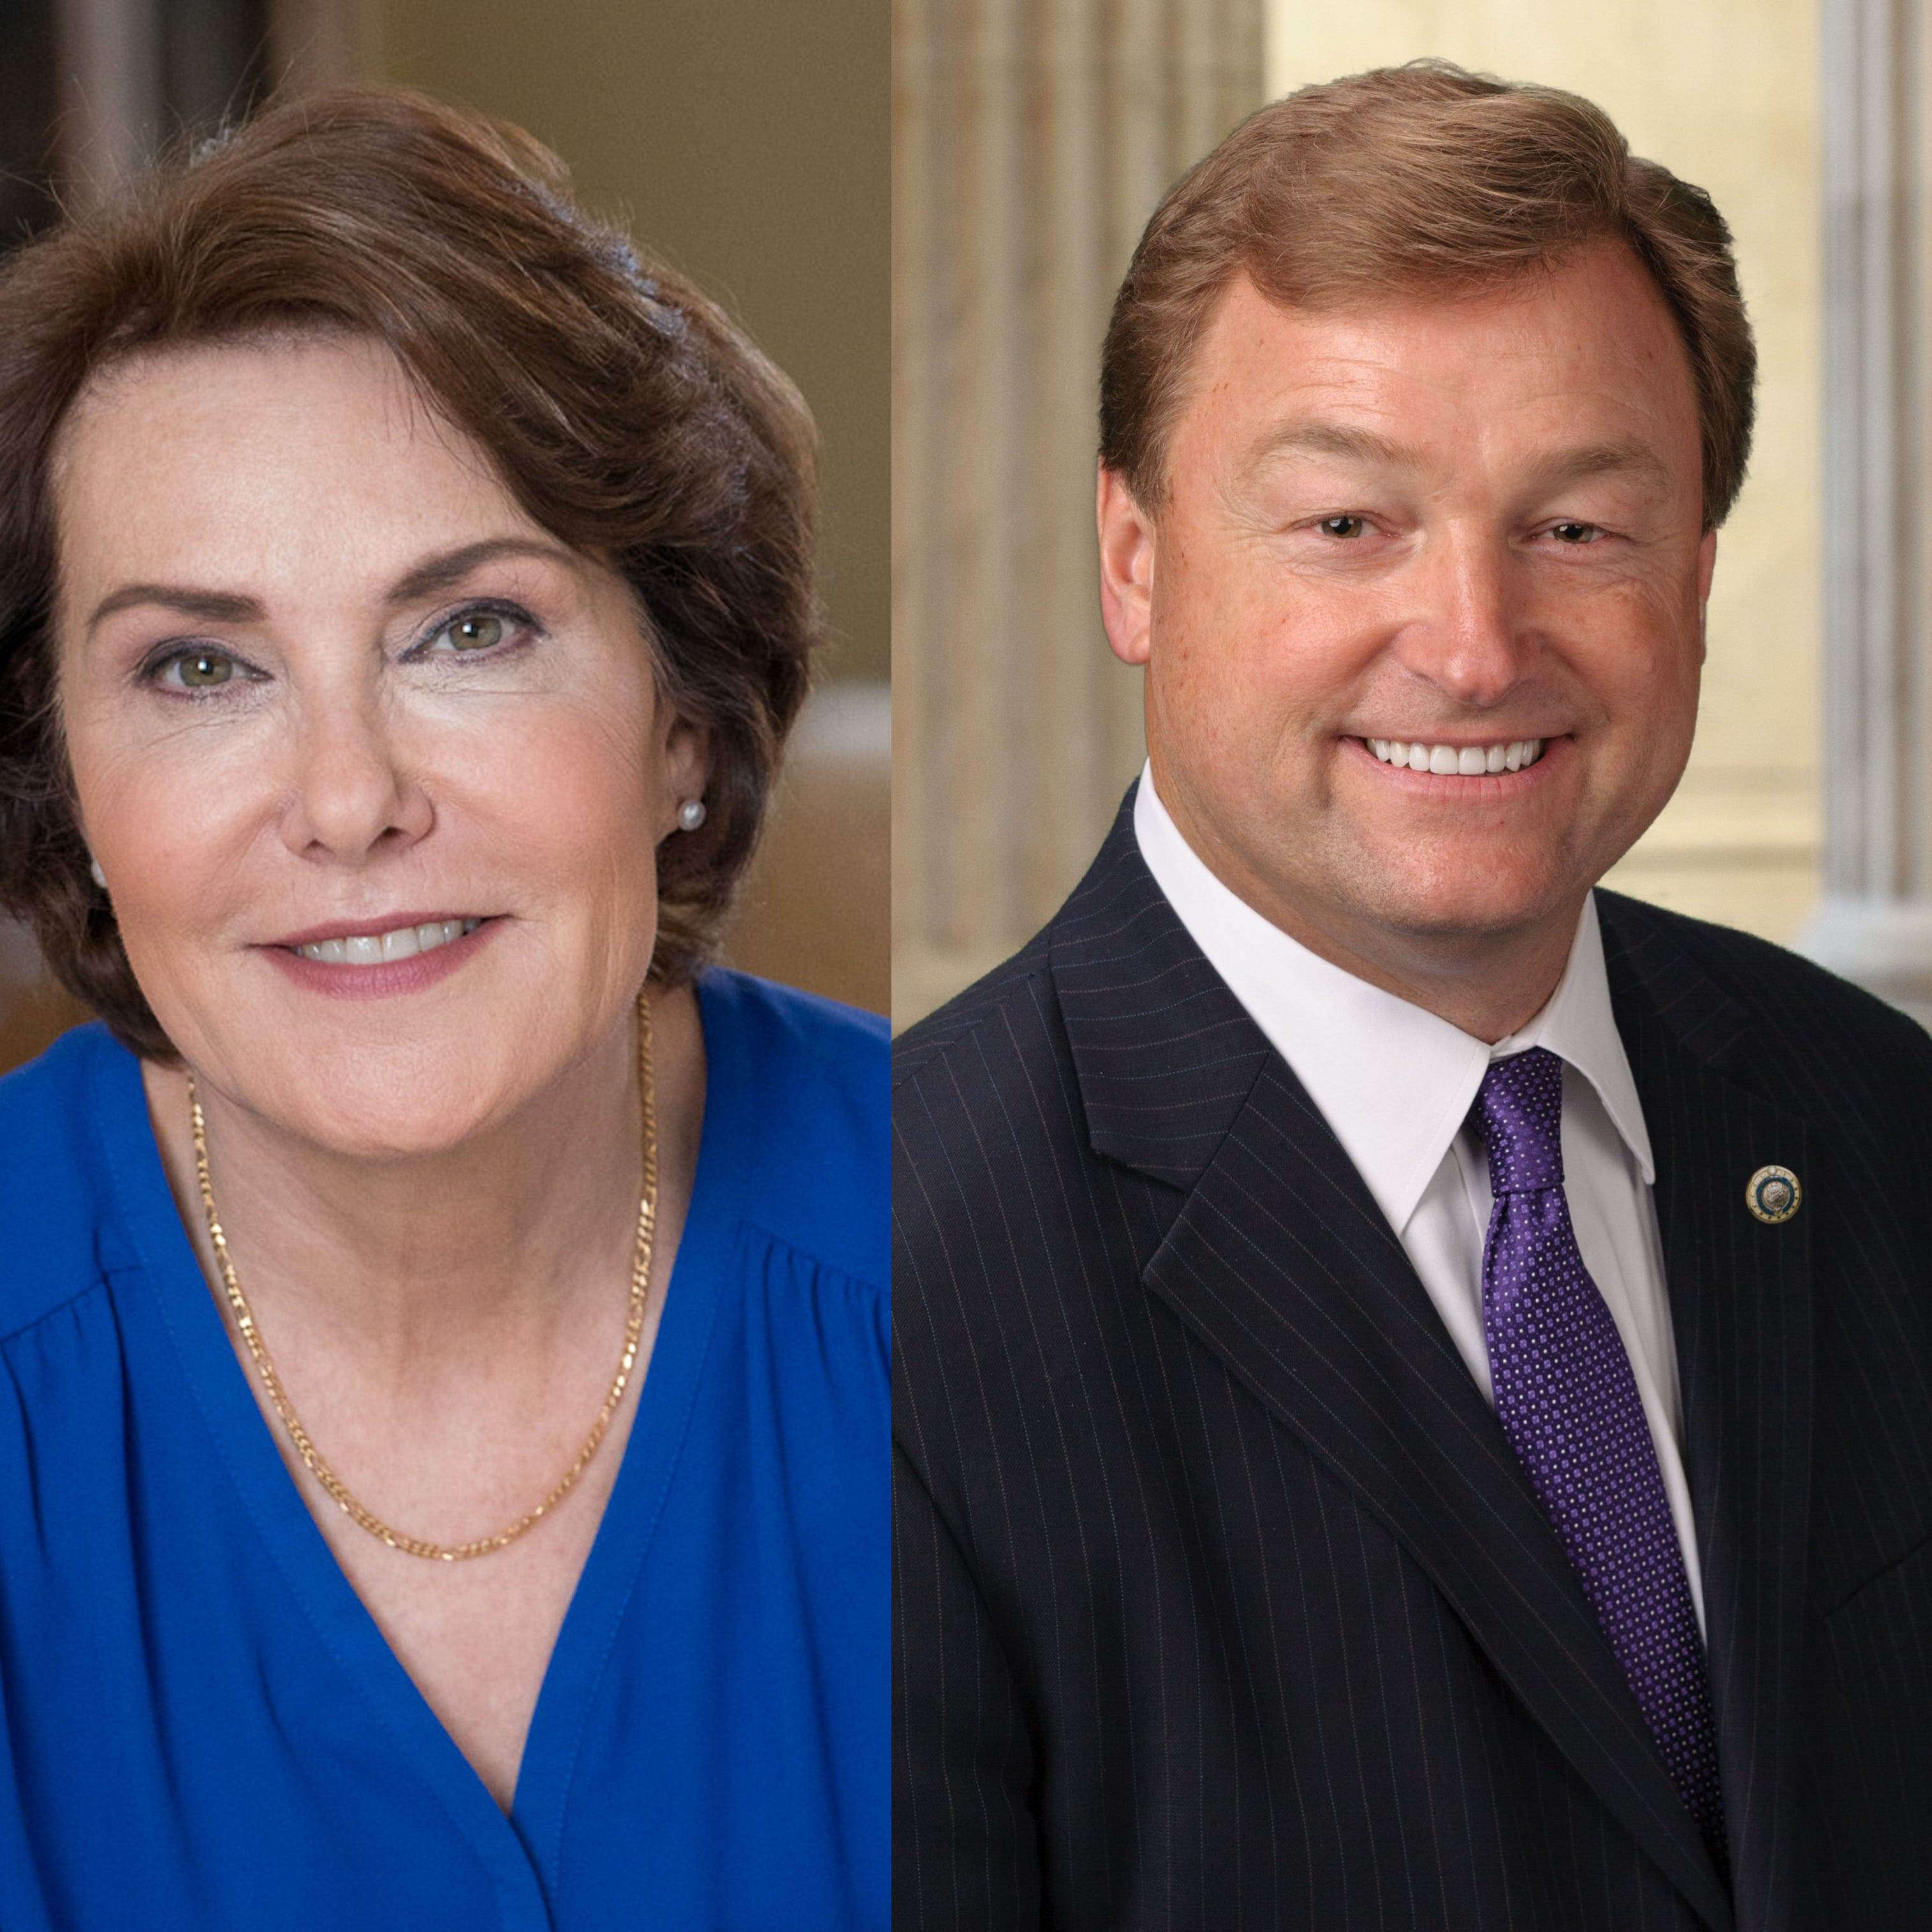 Heller vs. Rosen: Sparks fly as U.S. Senate hopefuls meet for long-awaited debate clash